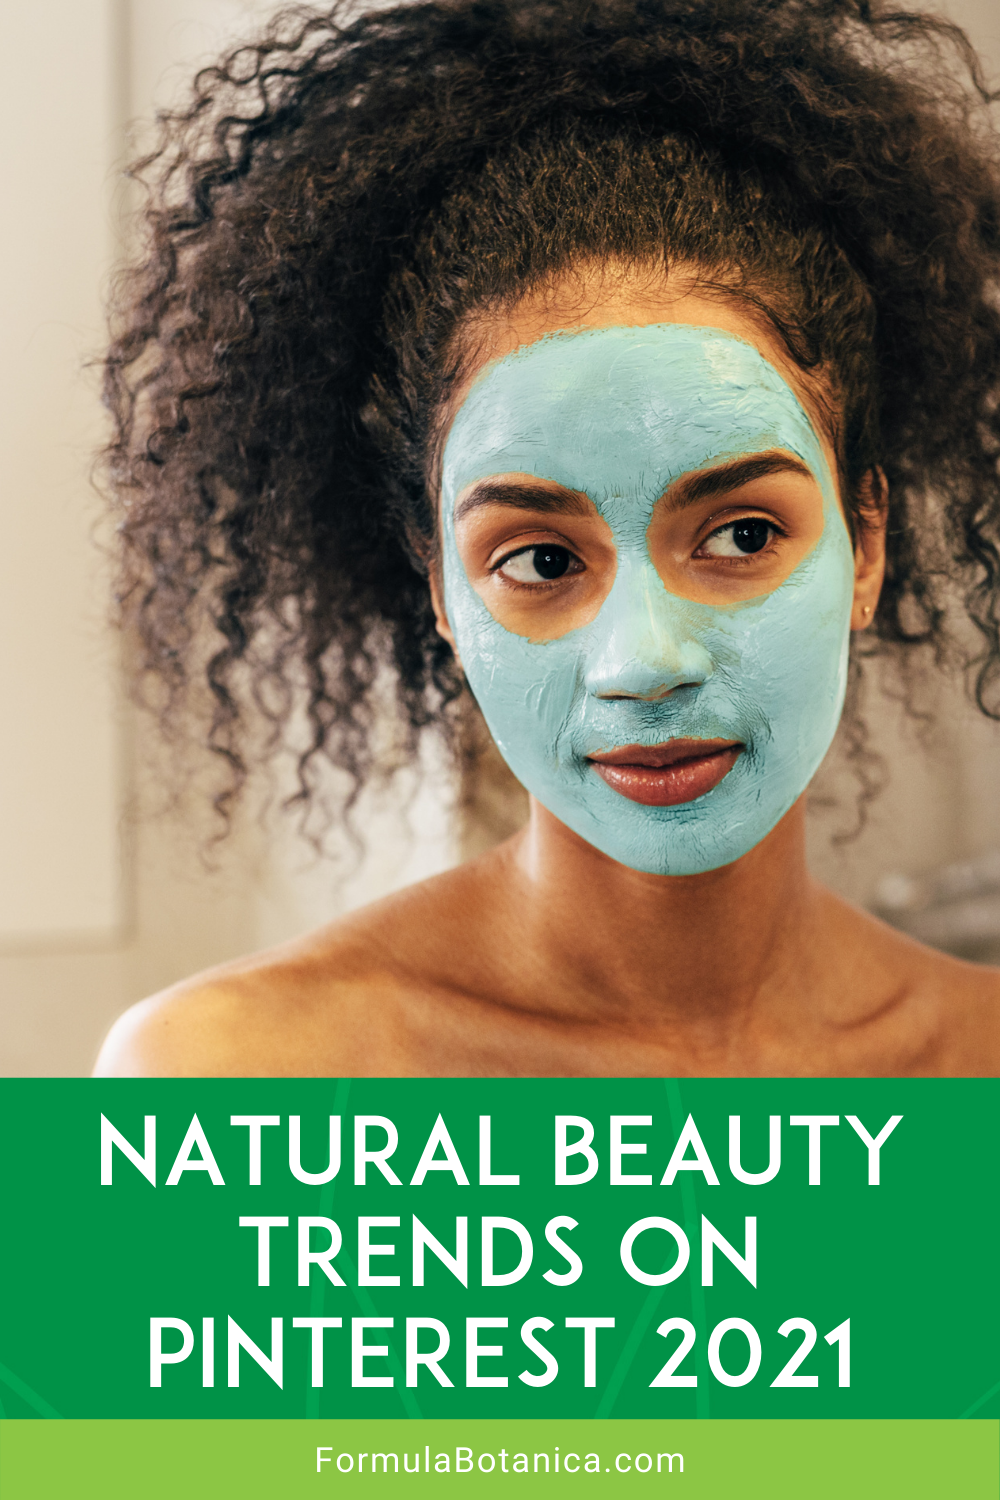 Natural Beauty Trends on Pinterest 2021